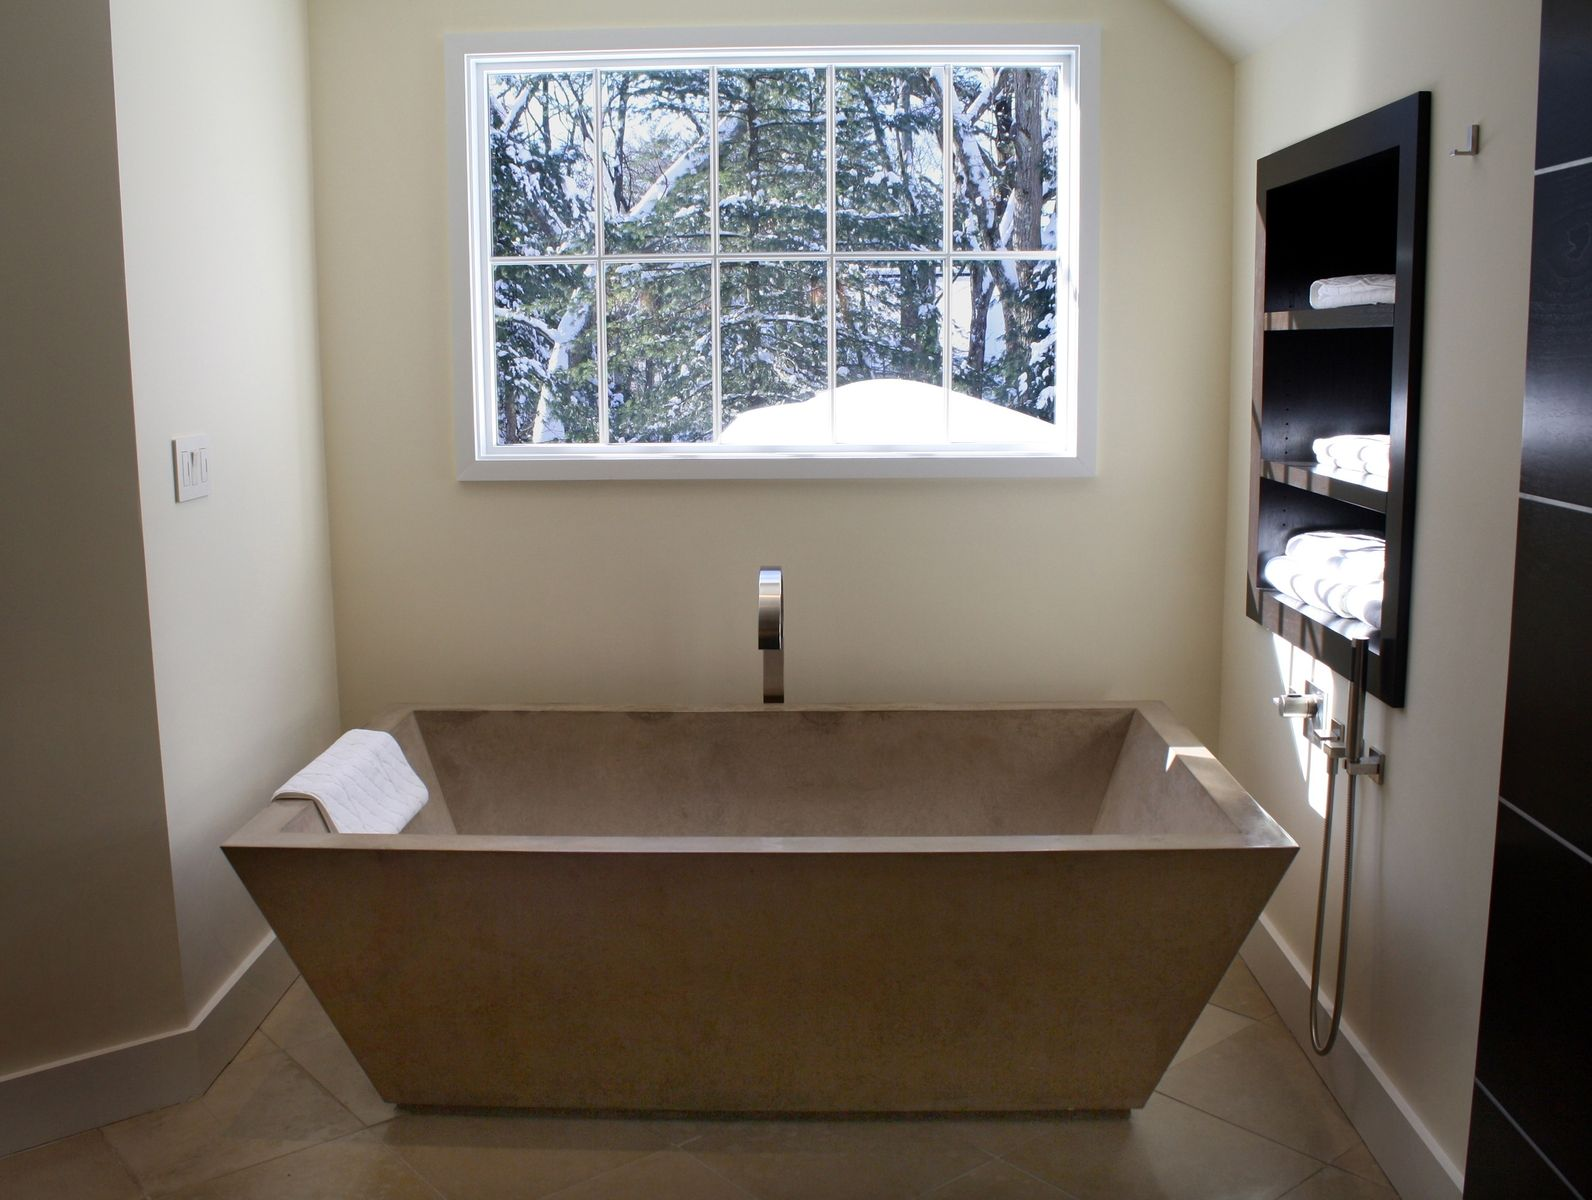 Hand Crafted Concrete Tub By Stone Soup Concrete Inc